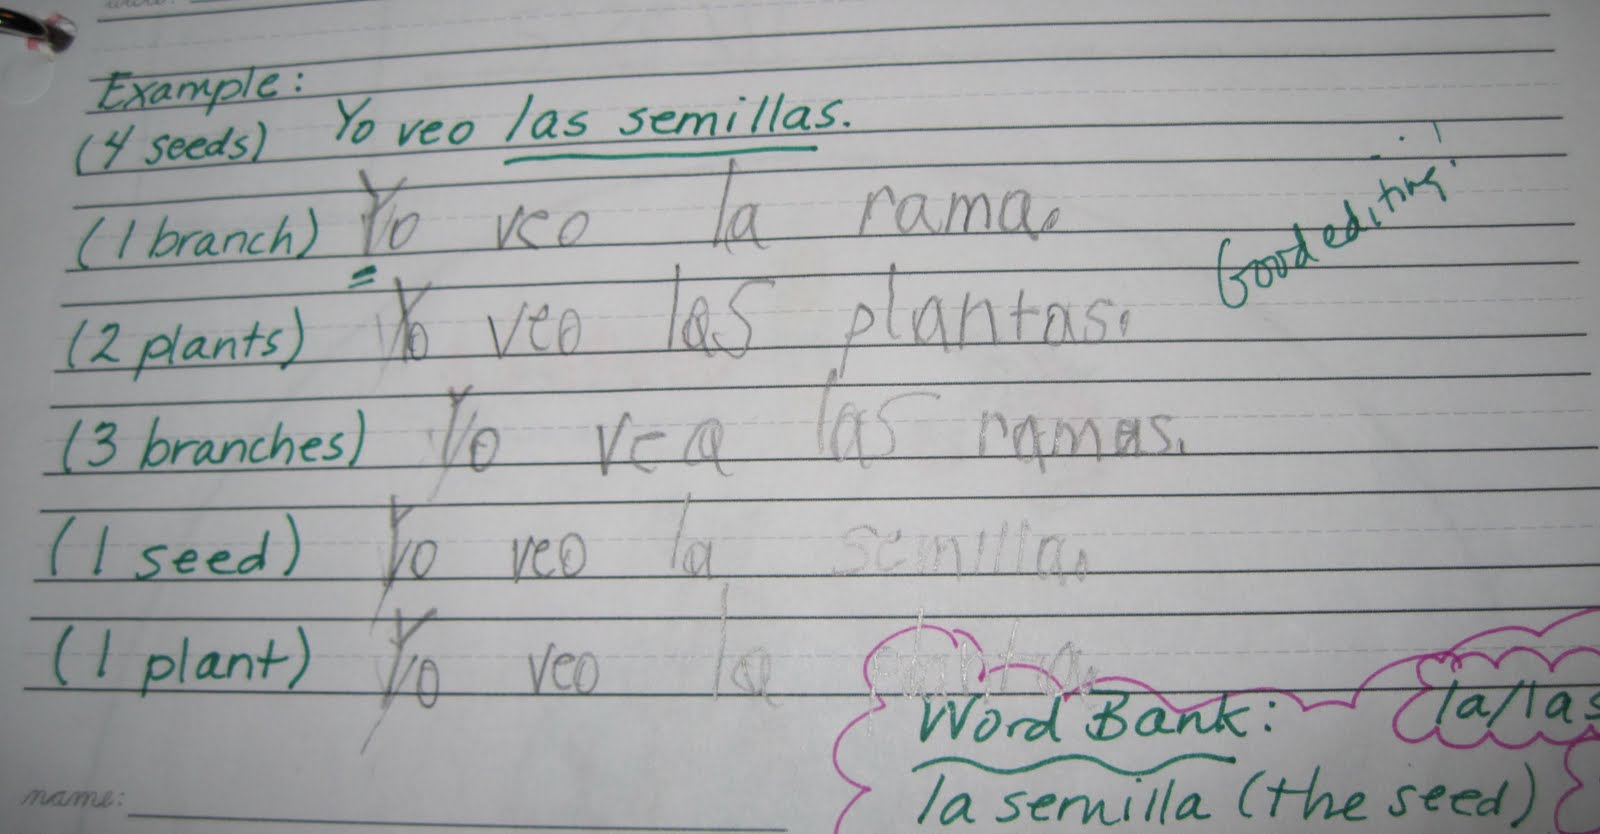 Step 4: We wrote simple sentences about plants using high-frequency  sentences starters (Yo veo [I see], Que ves [What do you see?